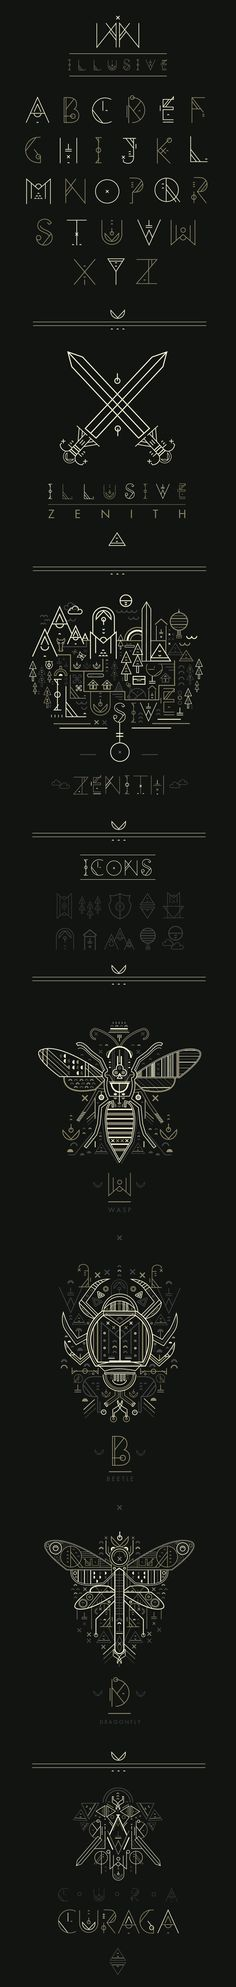 Illusive by Petros Afshar, via Behance    Flat Illustrative Style + Display Type